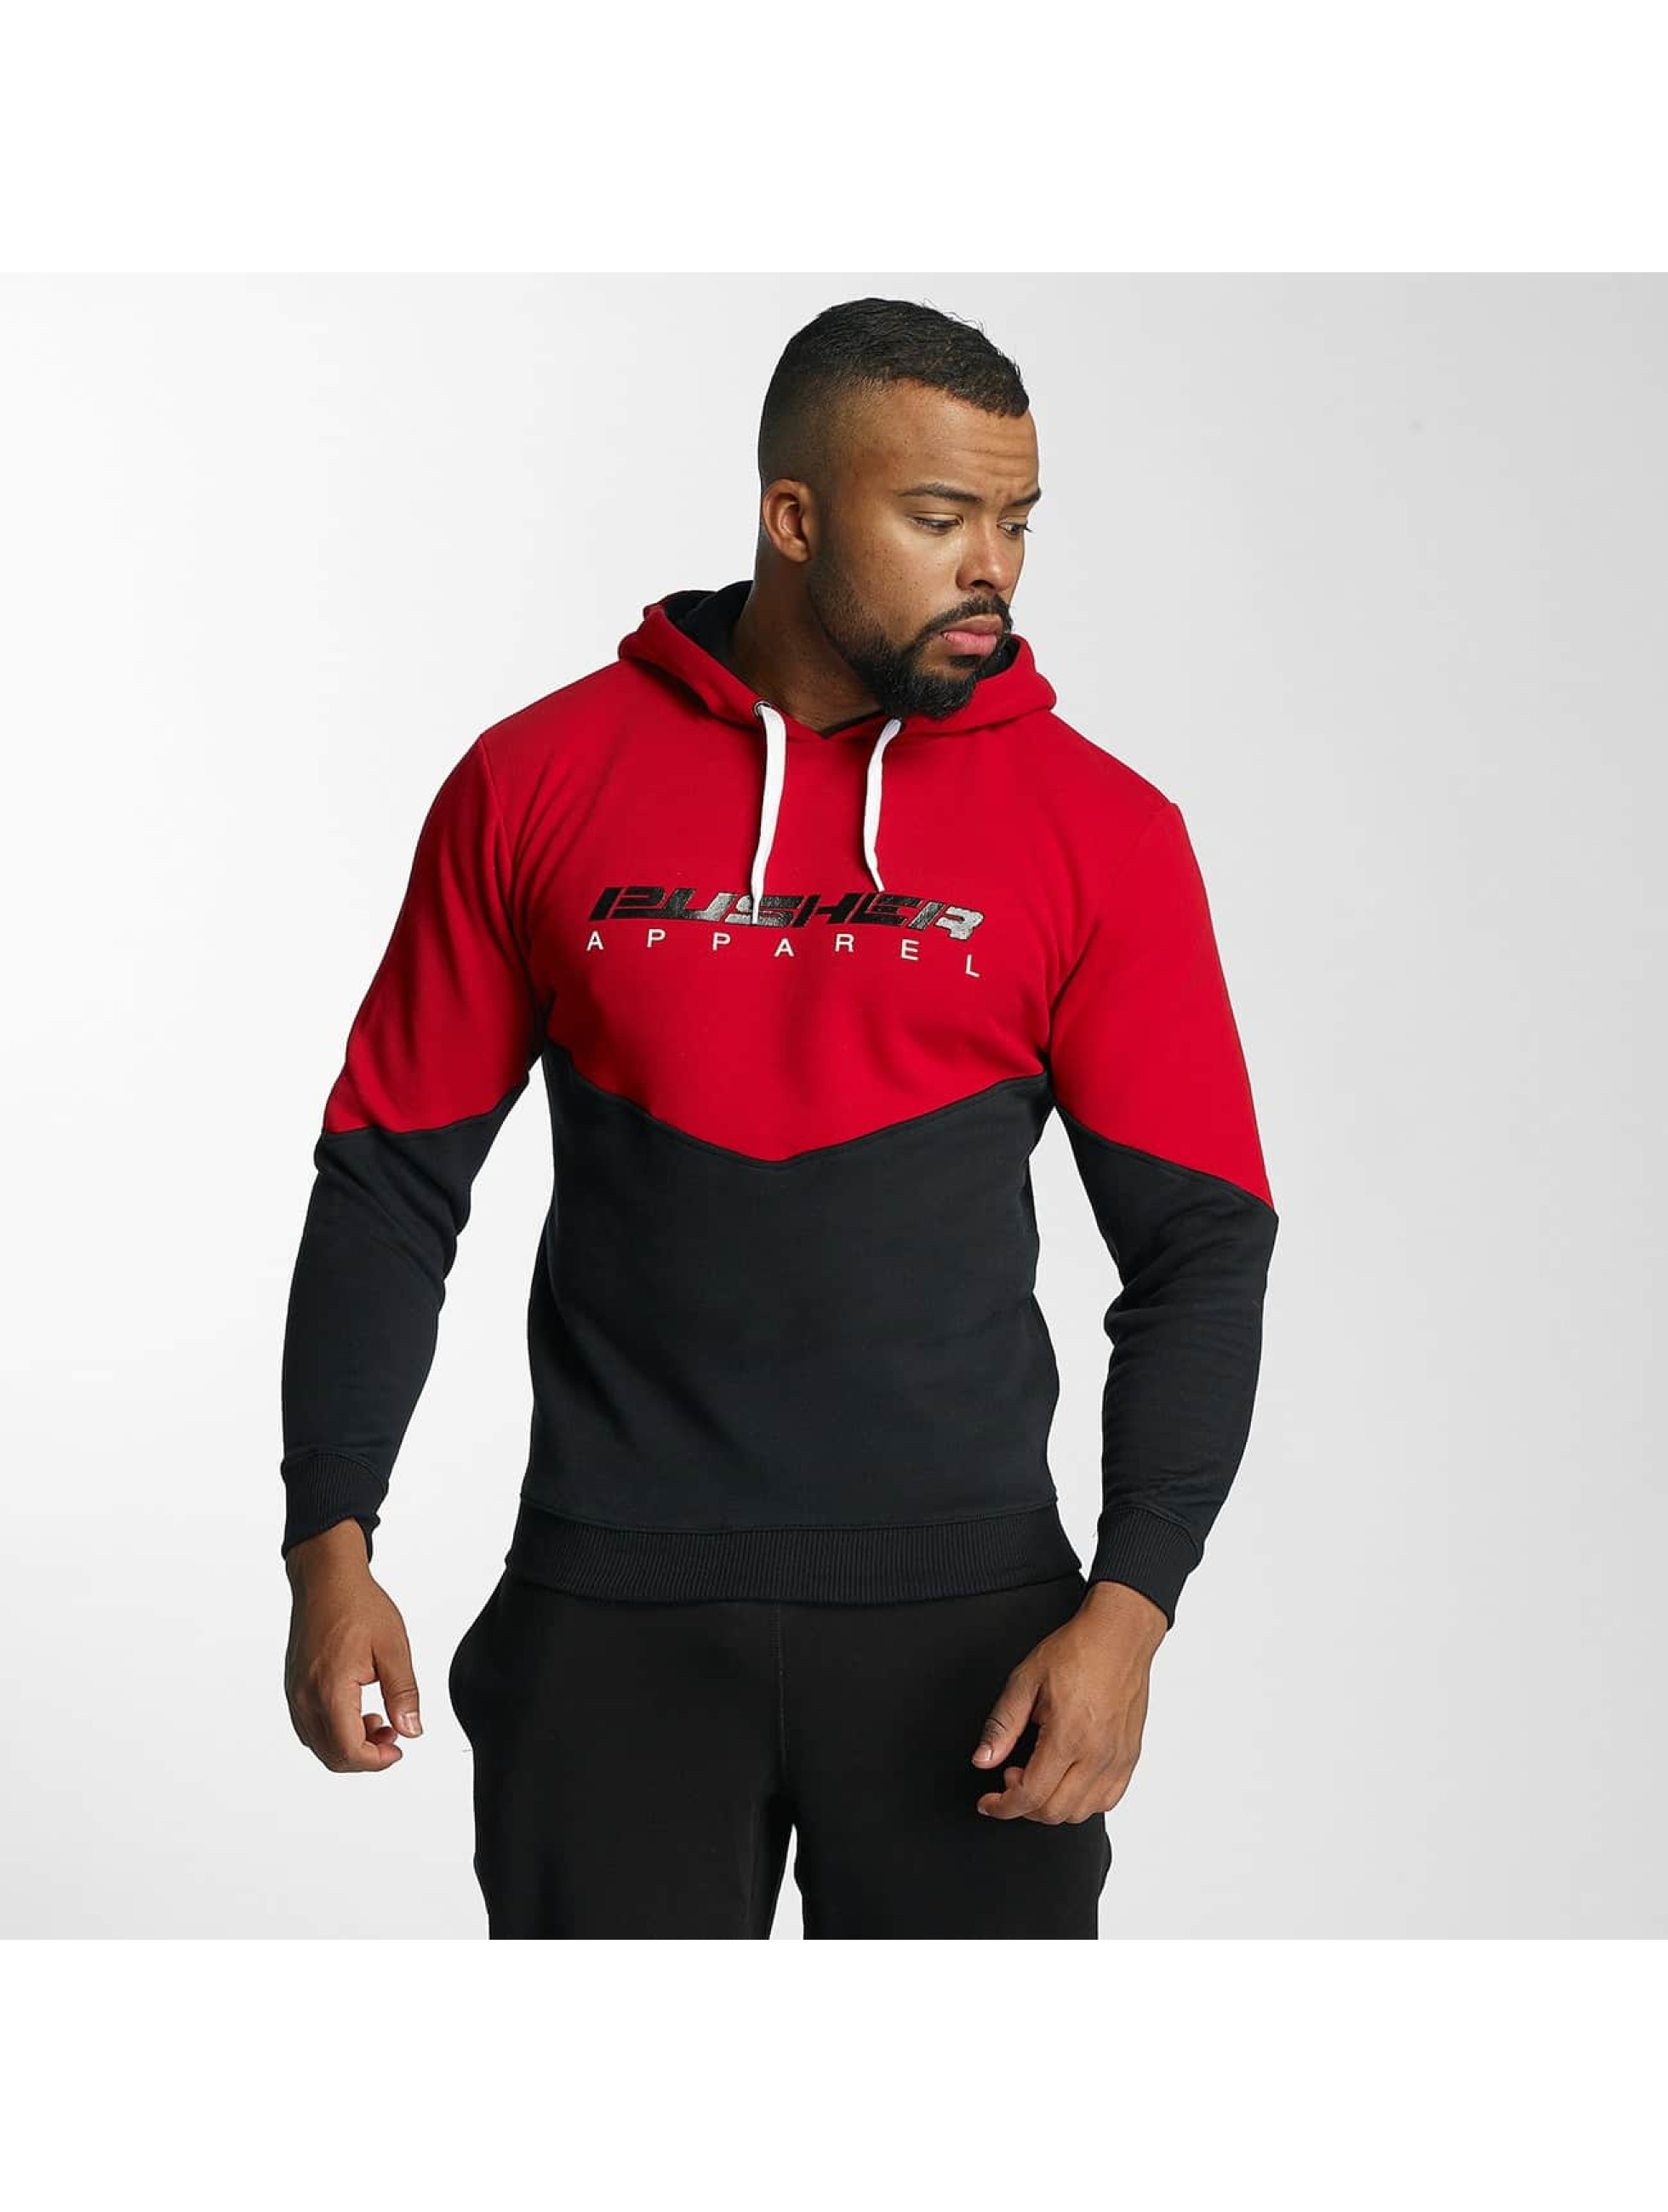 Pusher Apparel Hoody 211 Rob schwarz